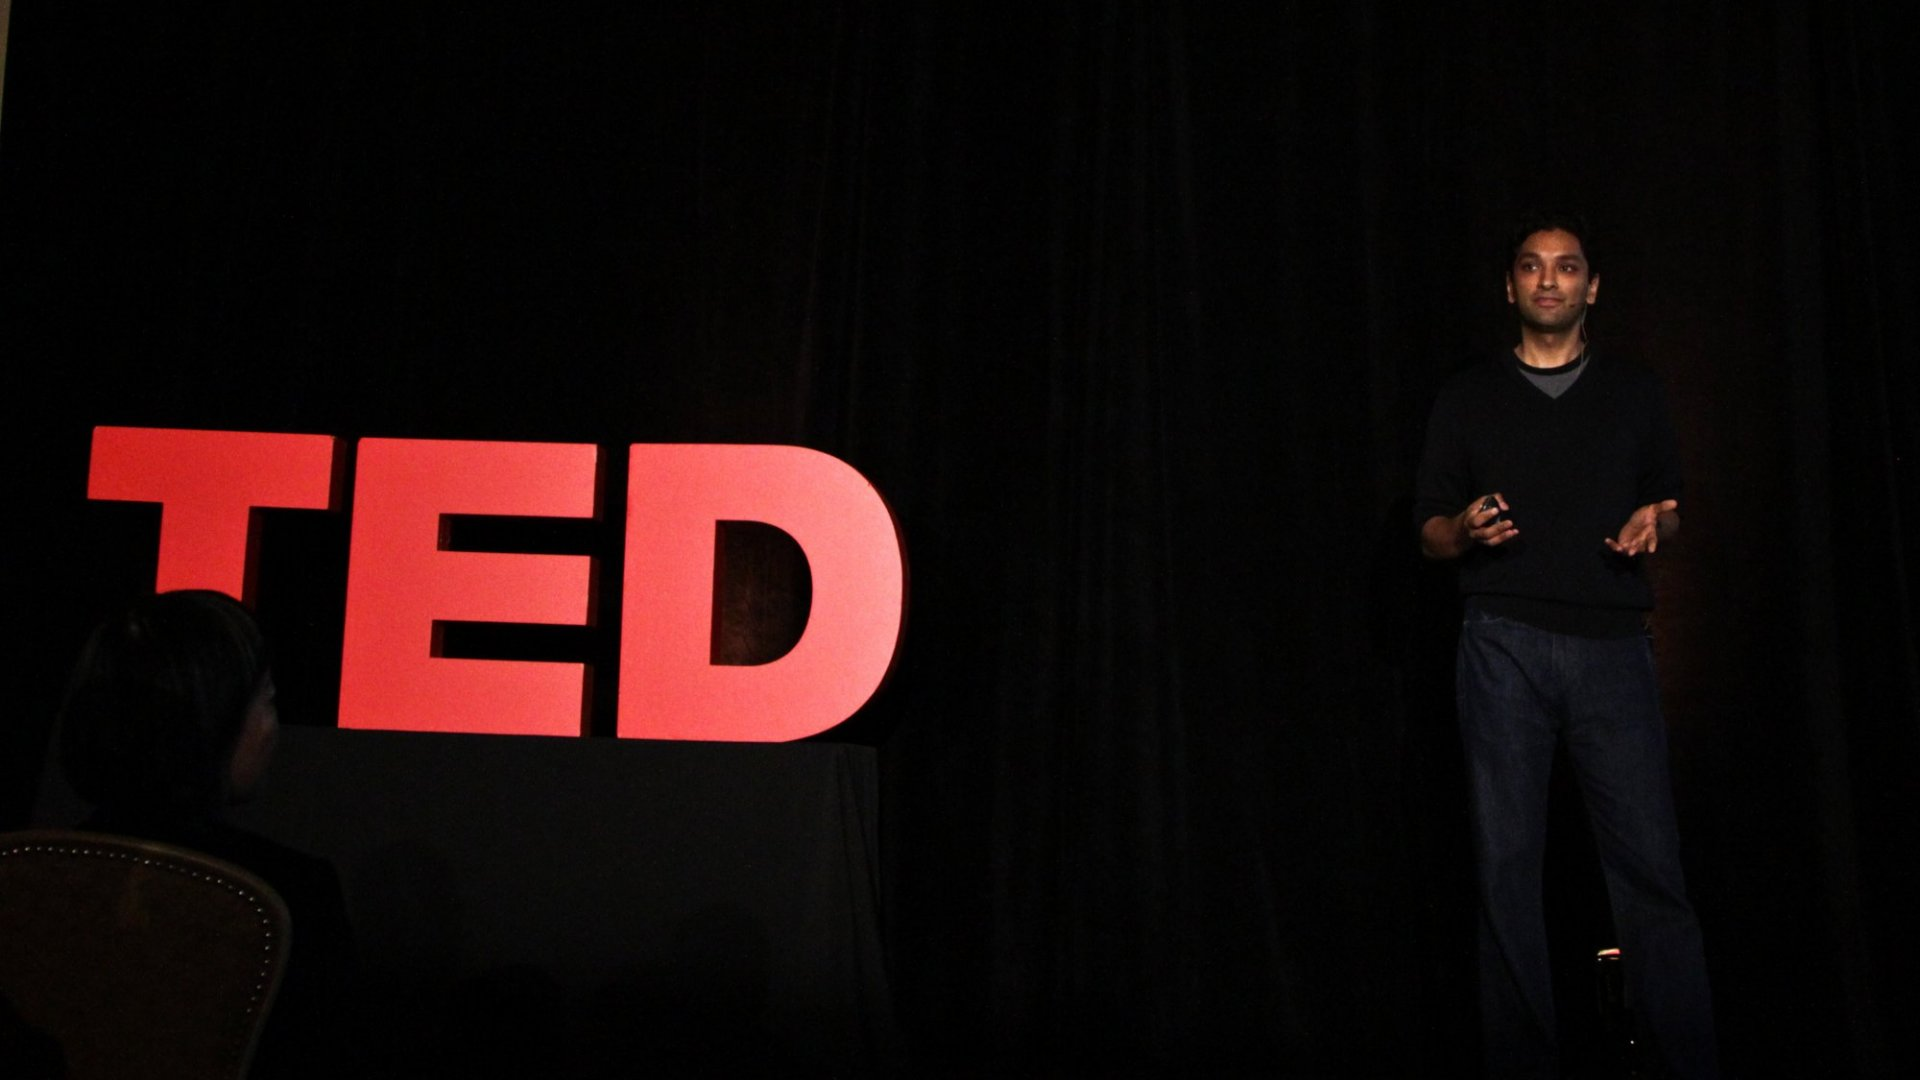 5 Top Indicators for Startup Success, According to This TED Talk